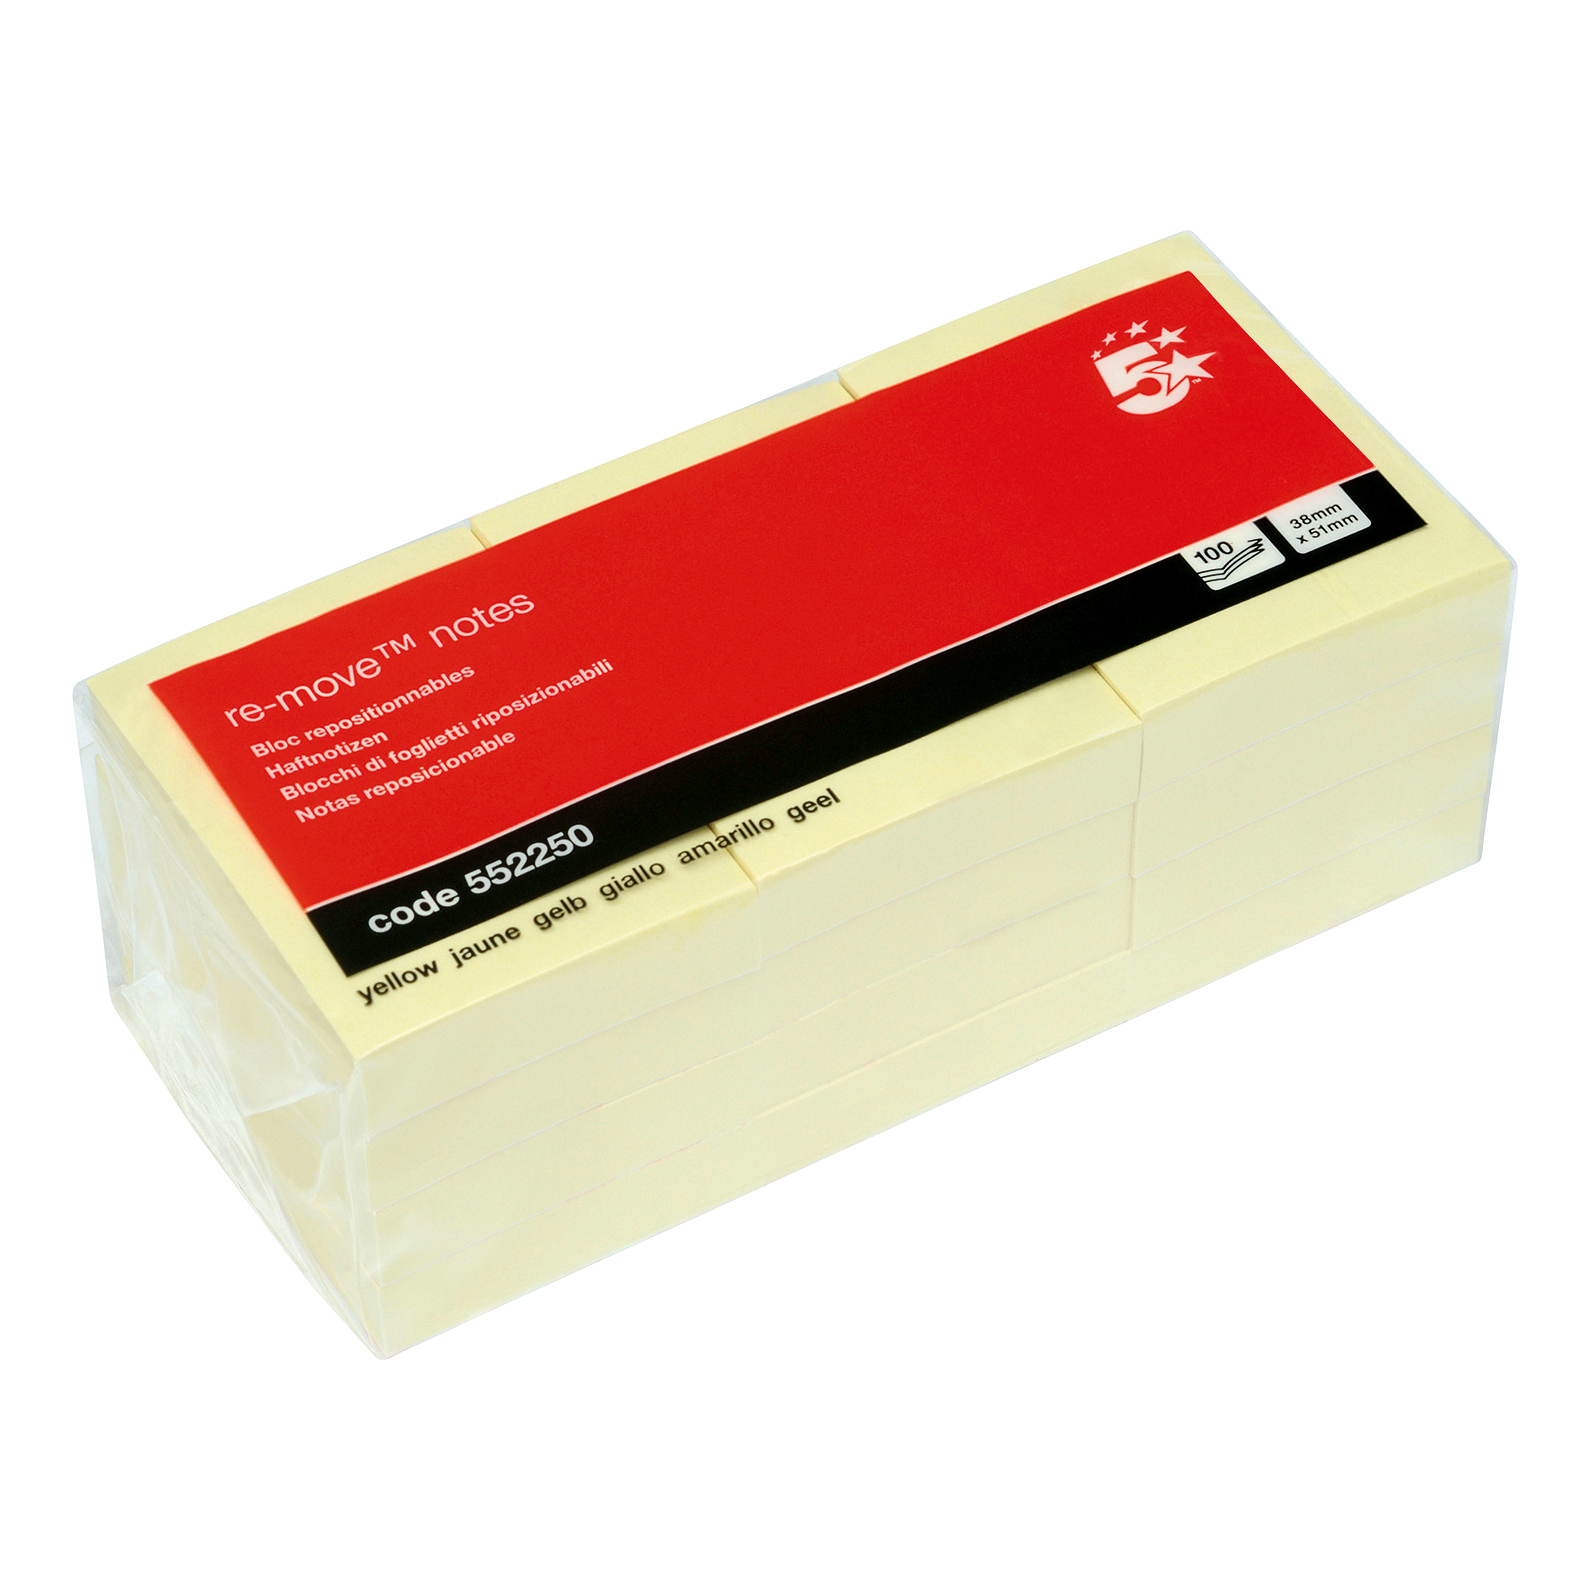 100 Sheets Per Pad 2 x Notes Canary Yellow 12 Pads 653E 38 x 51 mm